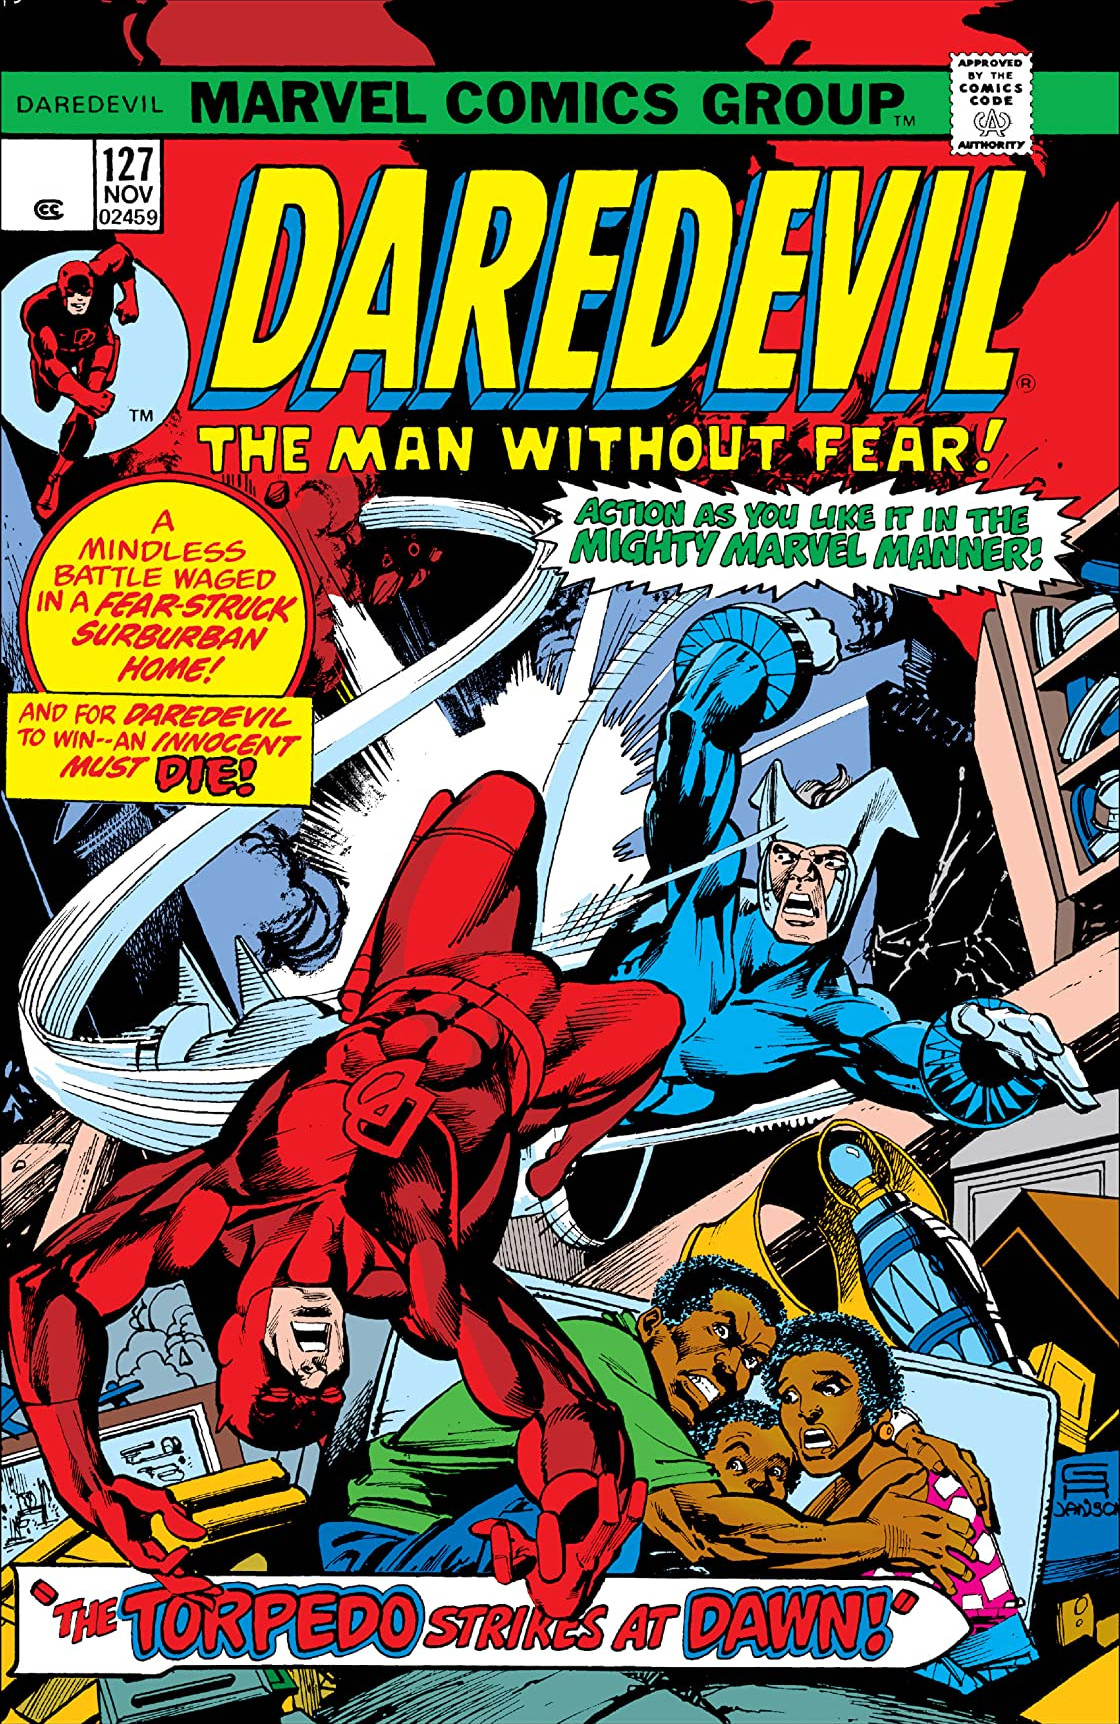 https://vignette.wikia.nocookie.net/marveldatabase/images/8/80/Daredevil_Vol_1_127.jpg/revision/latest?cb=20080808204311